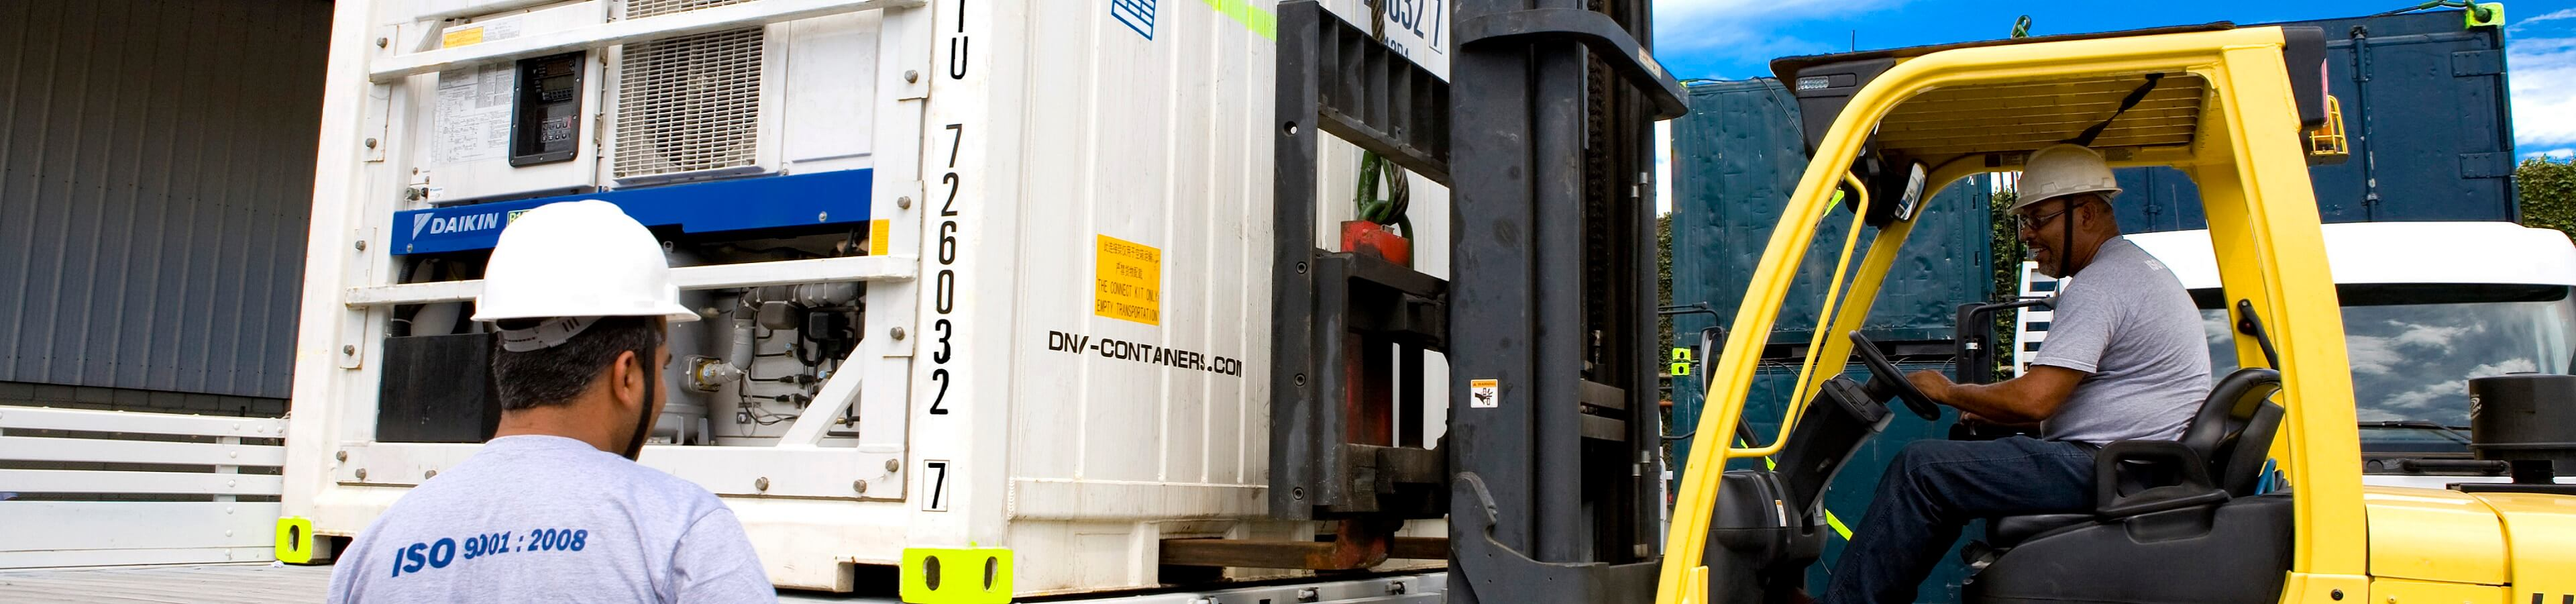 FORK TRUCK AND DNV